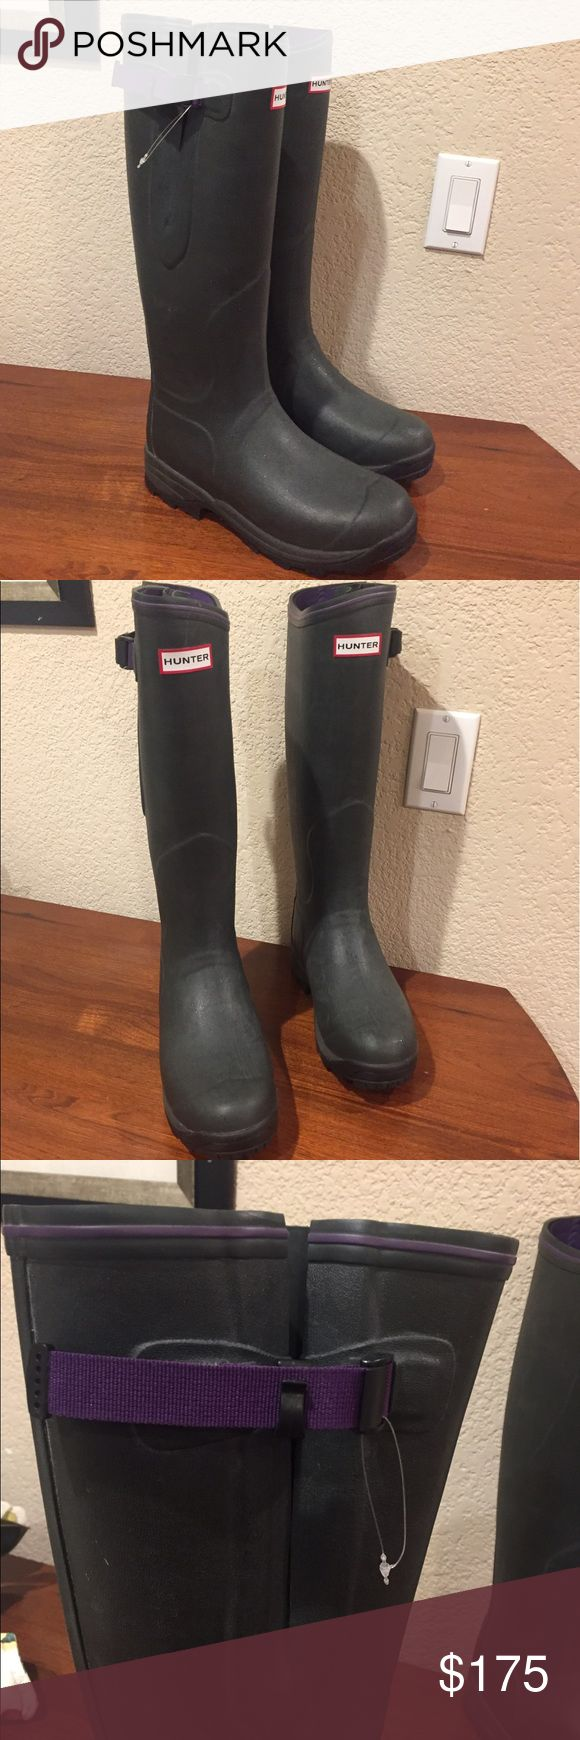 Hunter balmoral neoprene lined boots NWOB Hunter balmoral neoprene lined boots NWOB brand new never worn boots hunter green with purple adorable and warm! Perfect for spring! ☔️ euro 39 Hunter Shoes Winter & Rain Boots